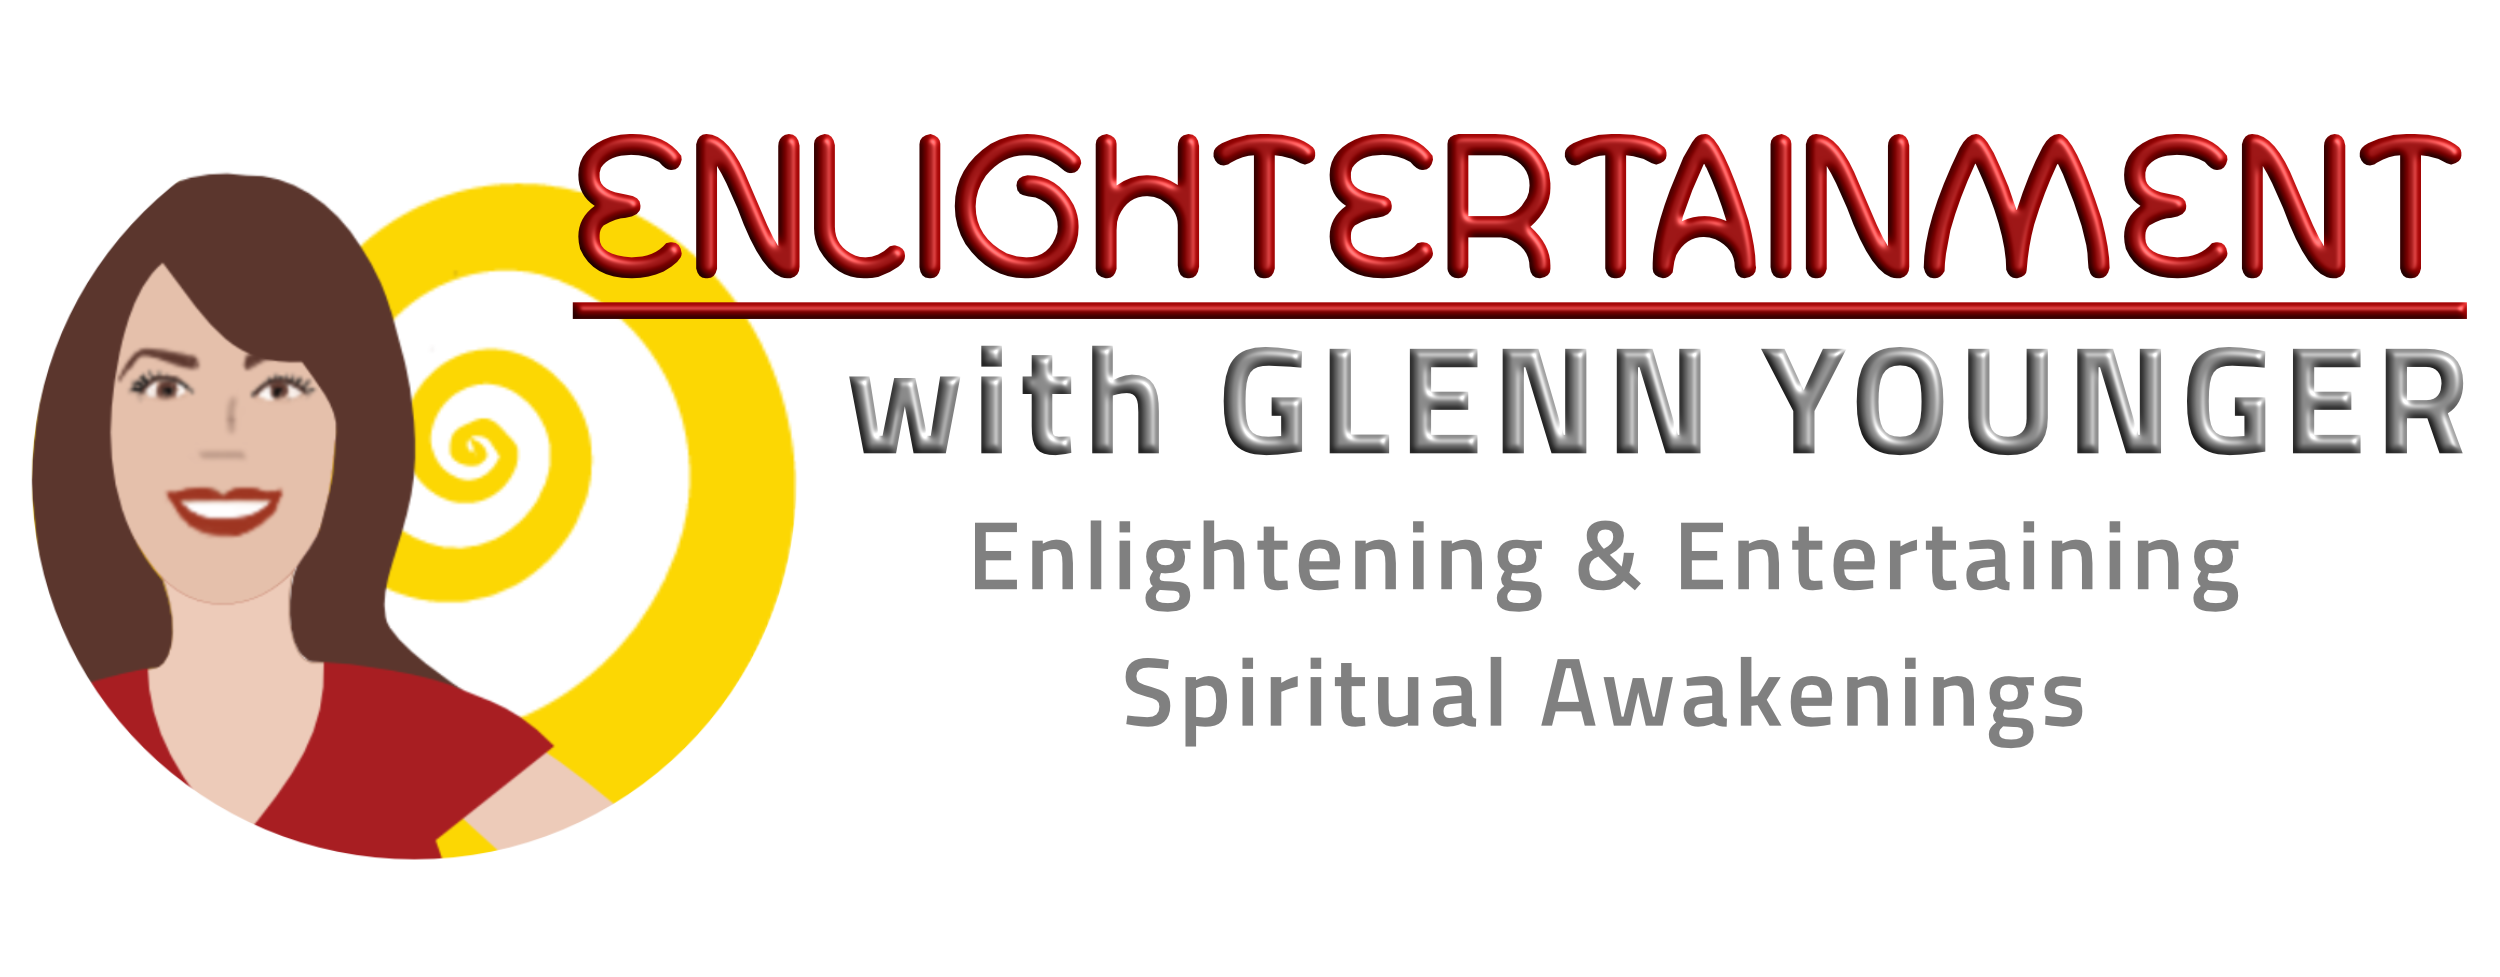 ENLIGHTERTAINMENT: Enlightening & Entertaining Spiritual Awakenings.